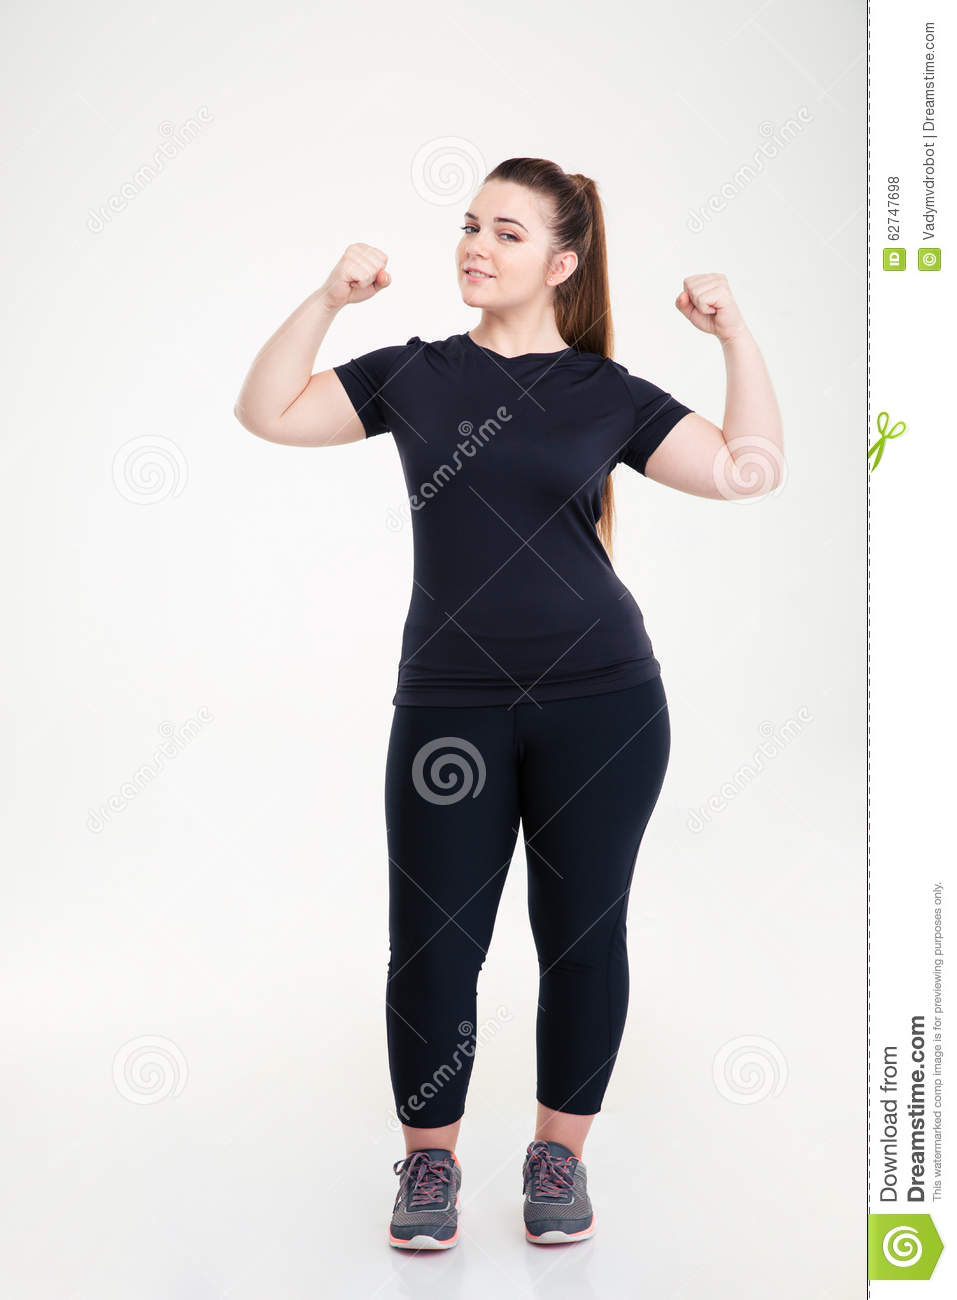 single bbw women in happy Happy fat woman with unhealthy lifestyle symbols around him such as junk food, sweets, rest at home and unhealthy drinks flat concept illustration of bad habits isolated on white happy.